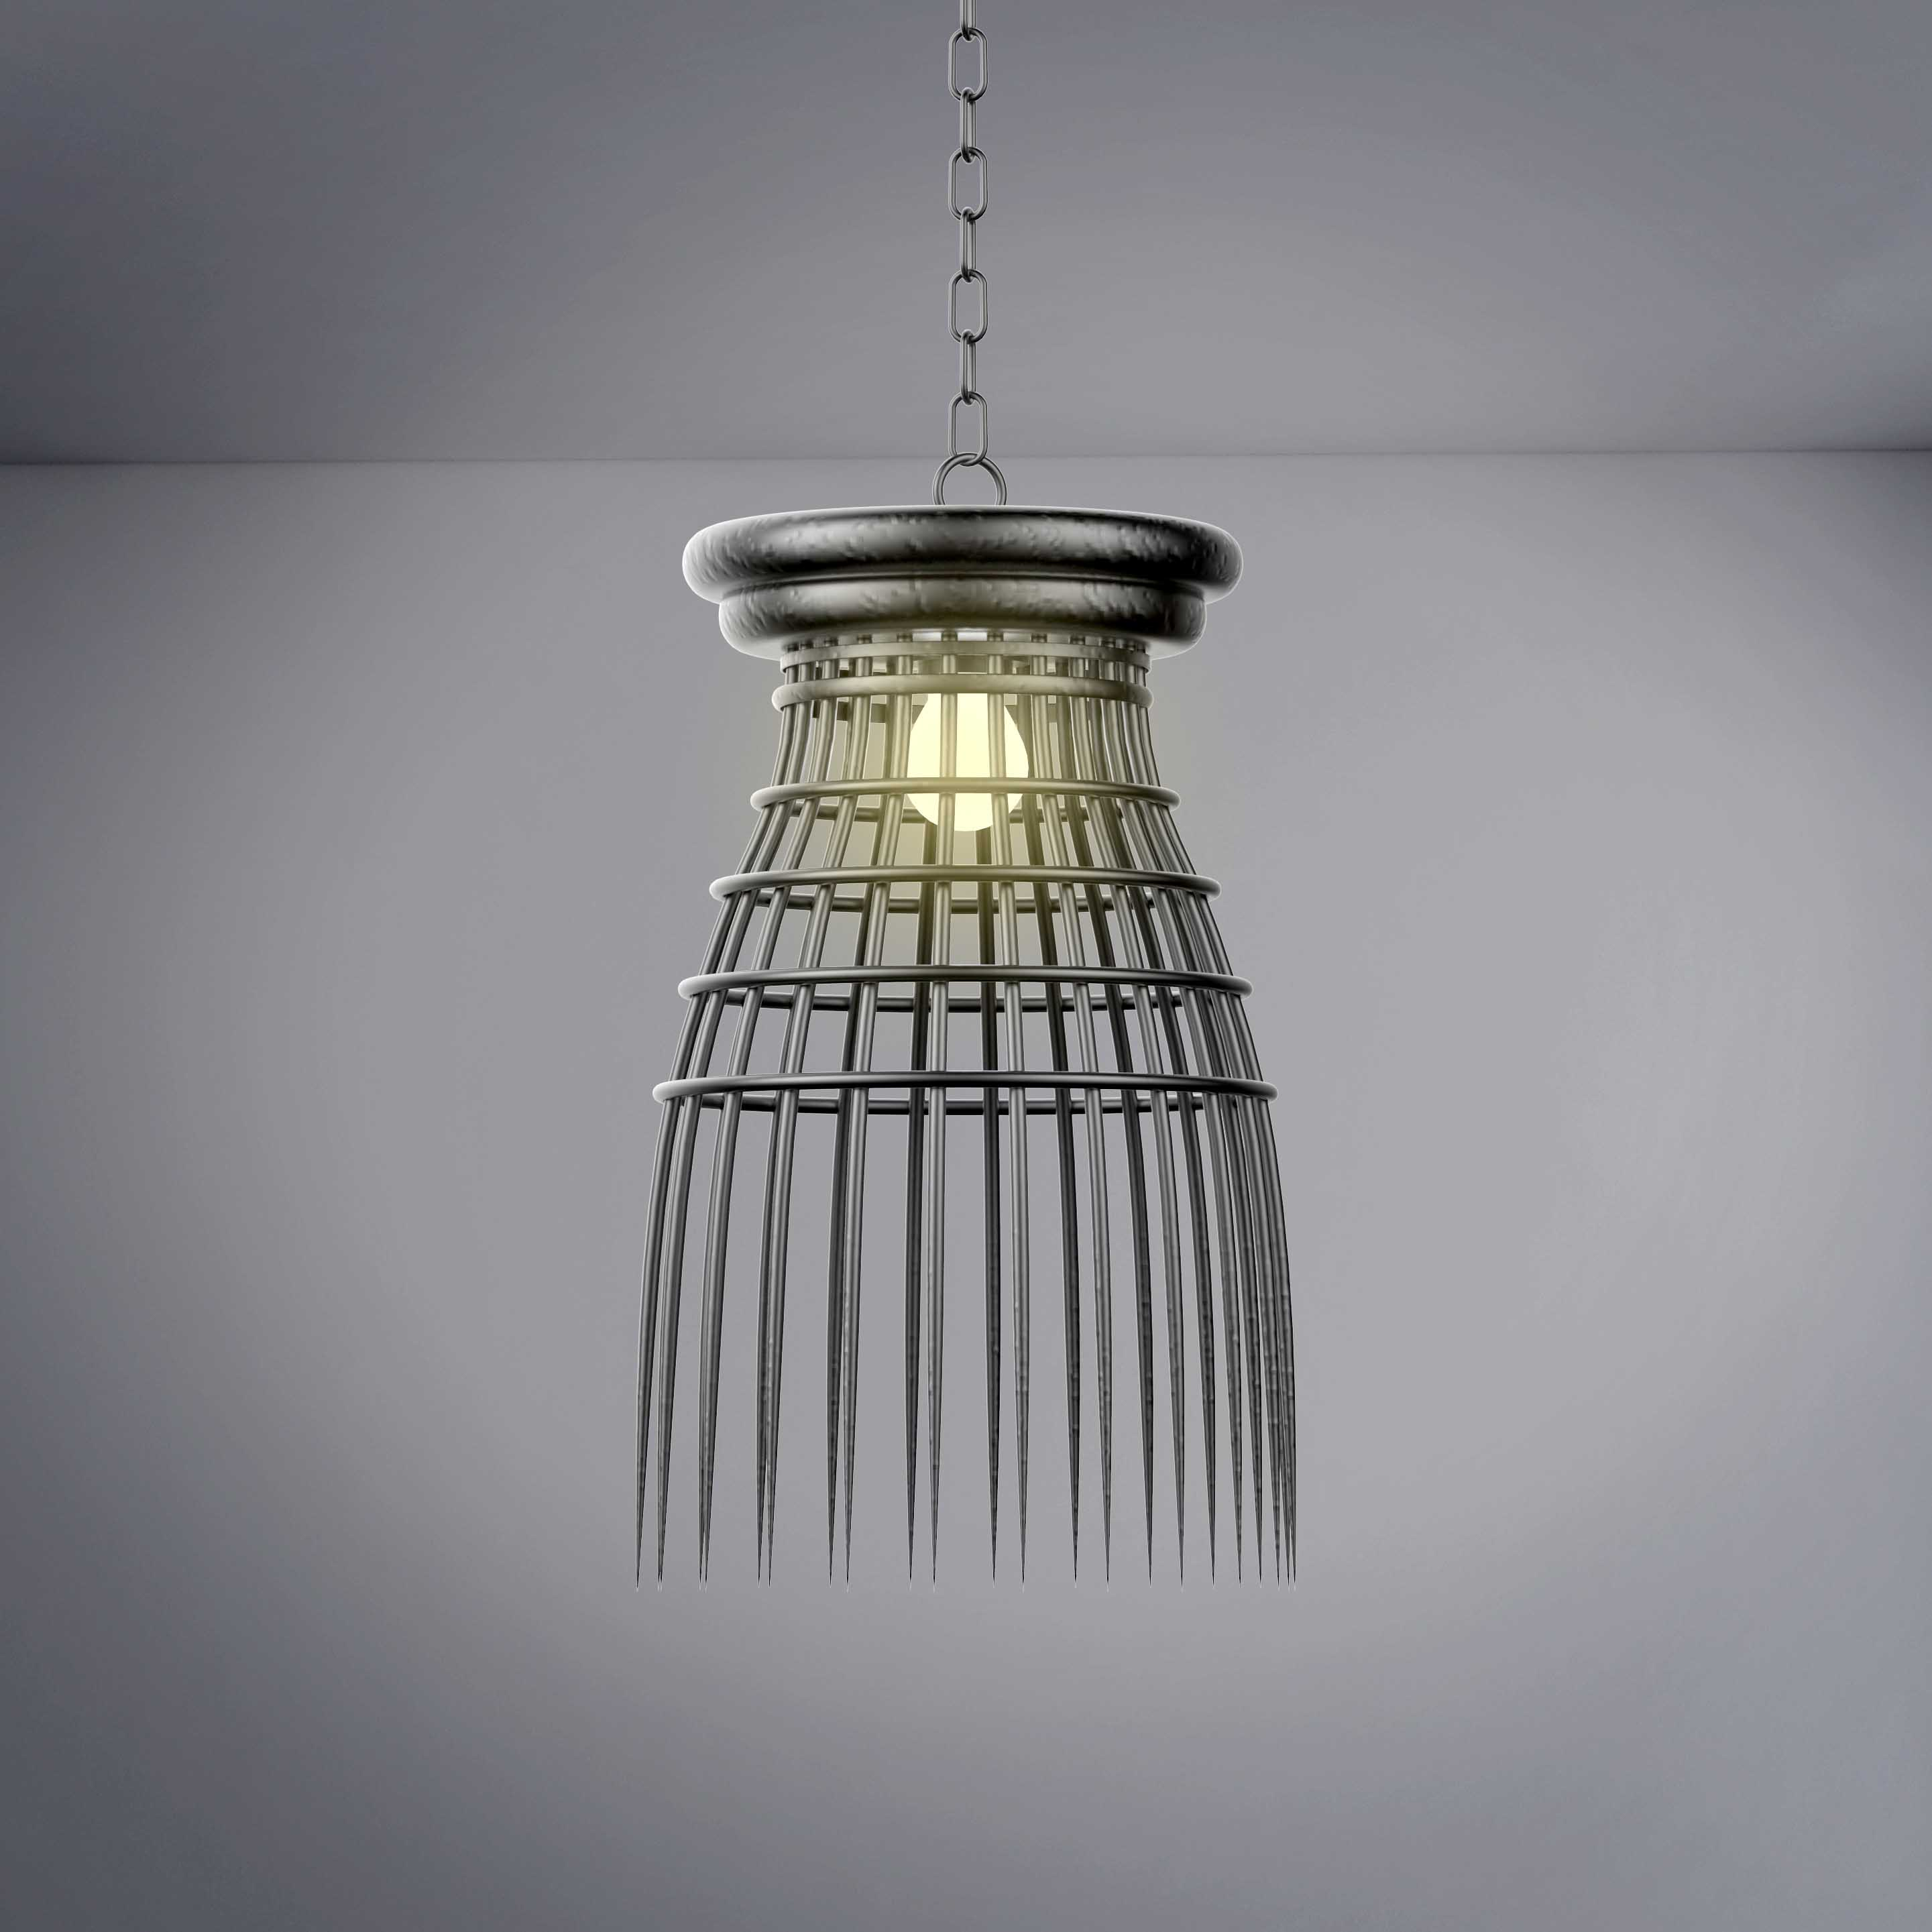 Vintage Cage Style Hanging Chandelier - 3D Product